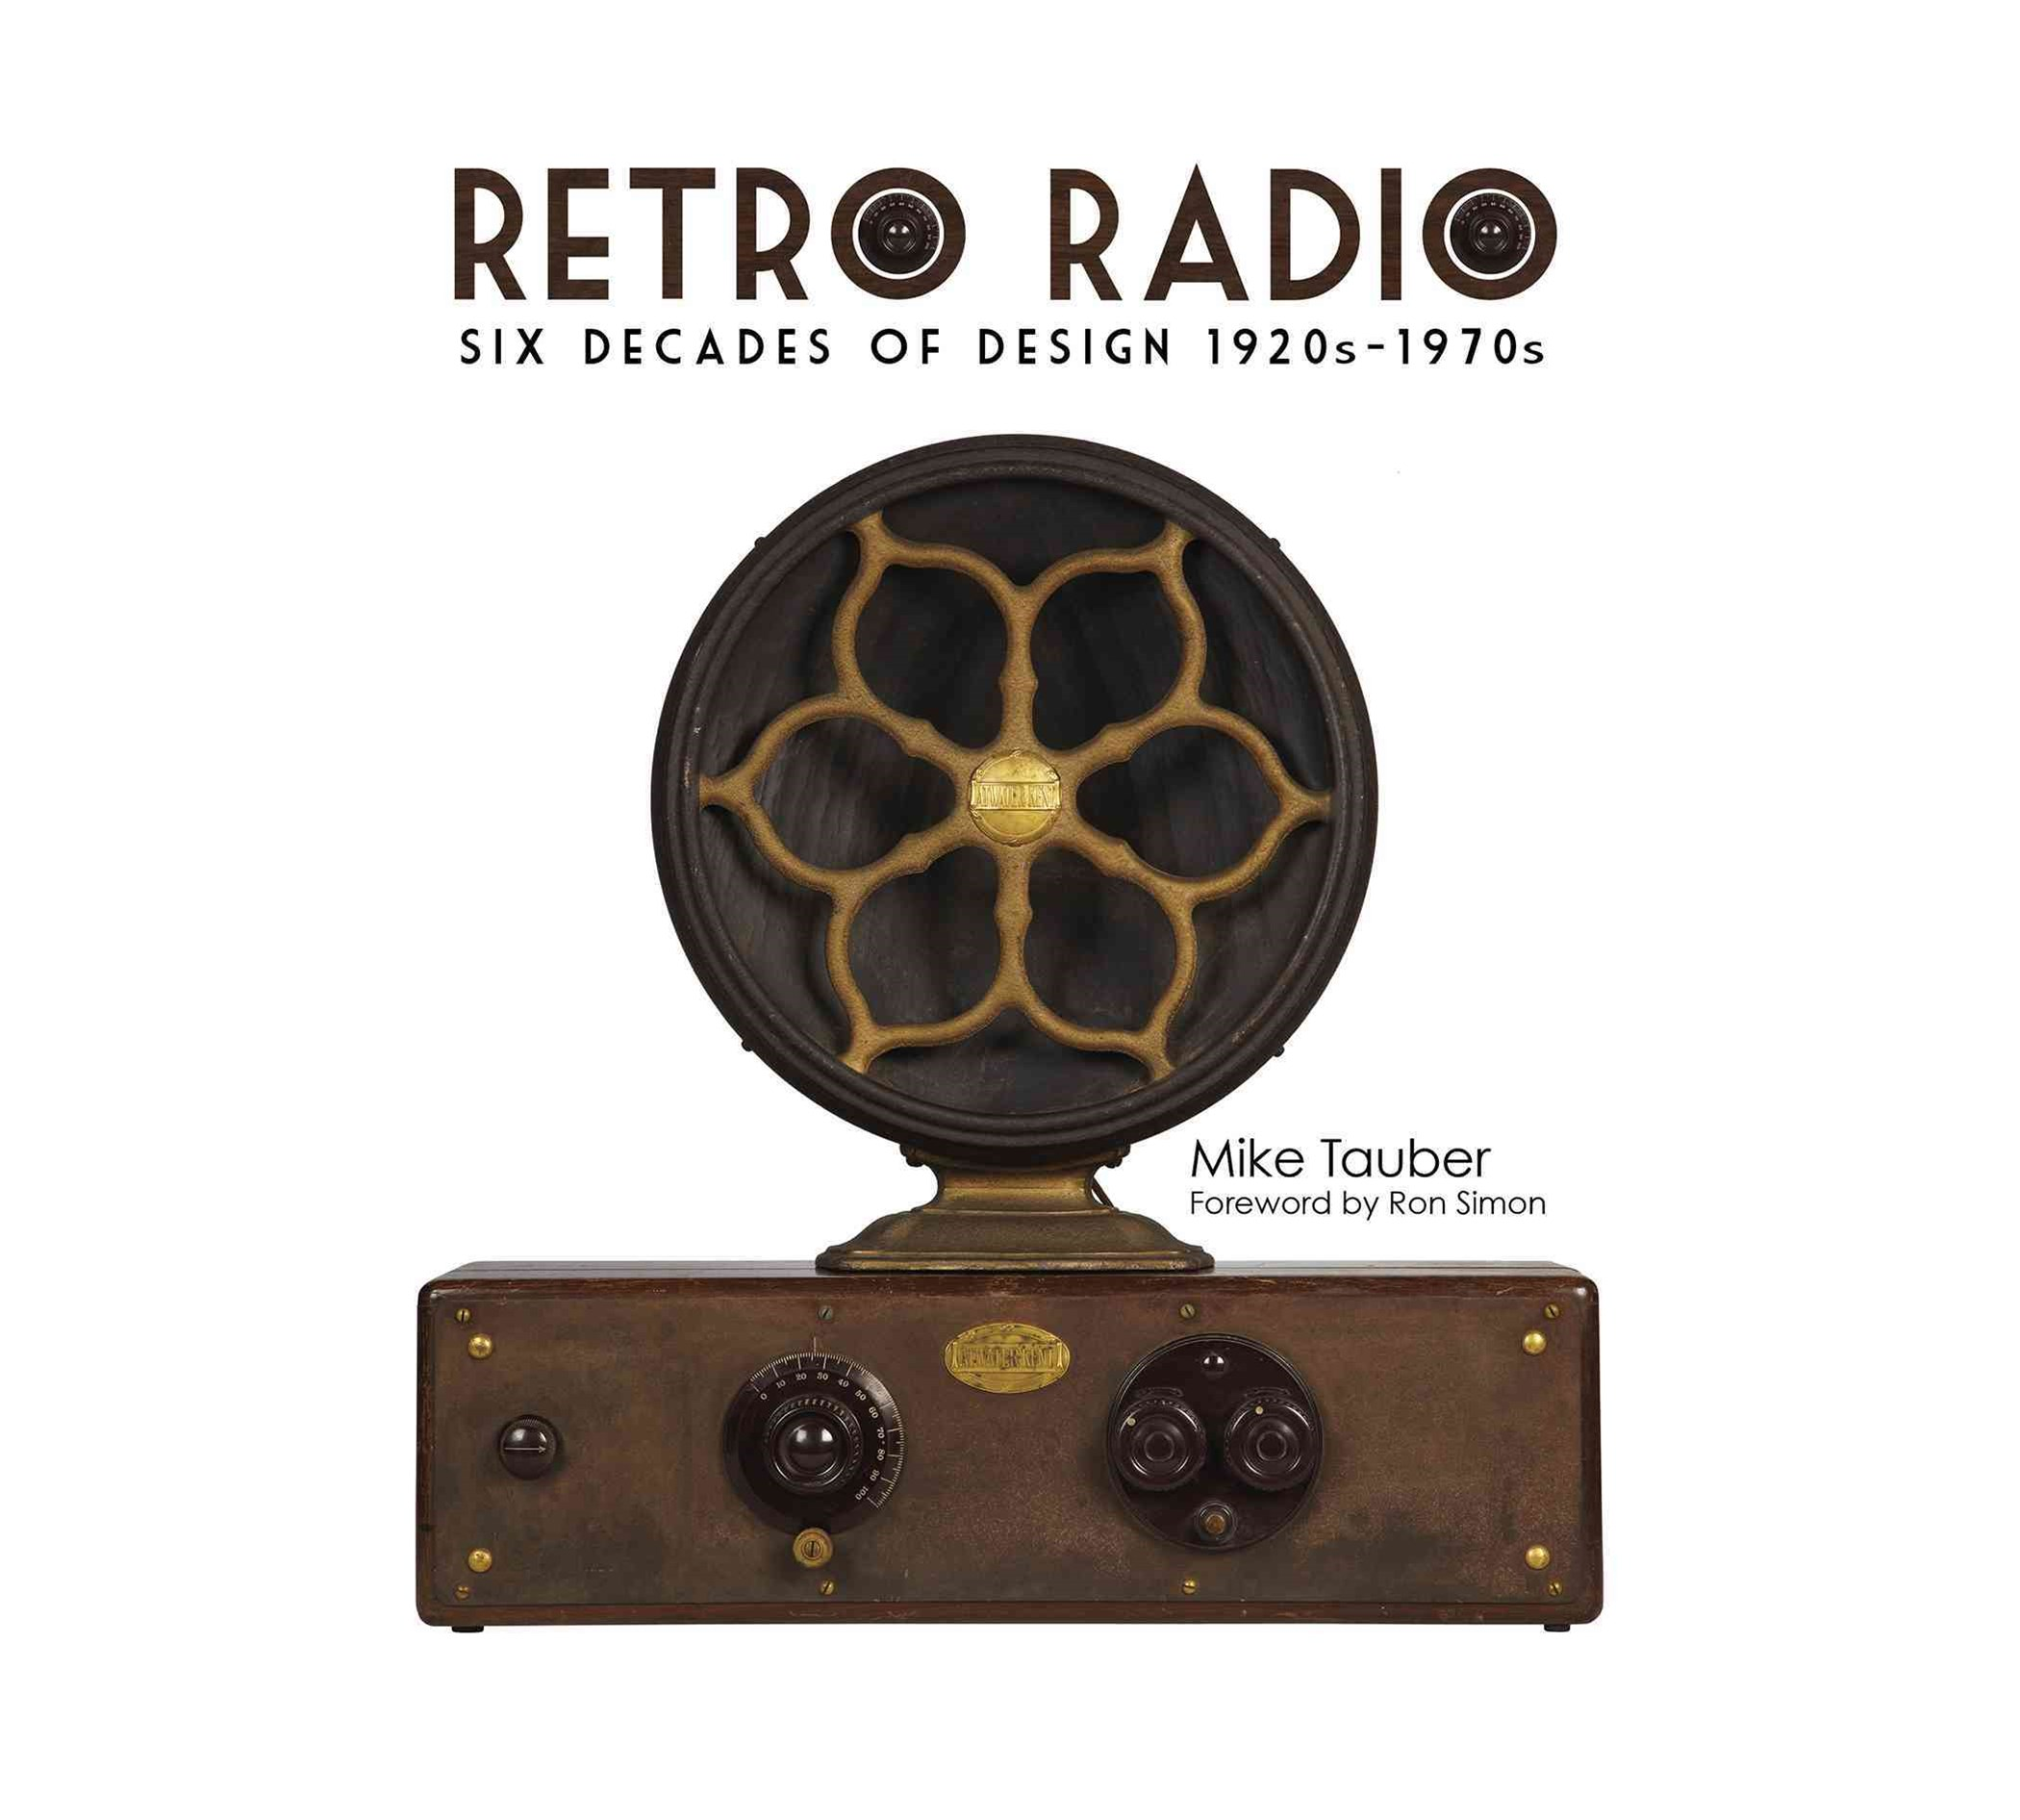 Retro Radio: Six Decades of Design 1920s-1970s